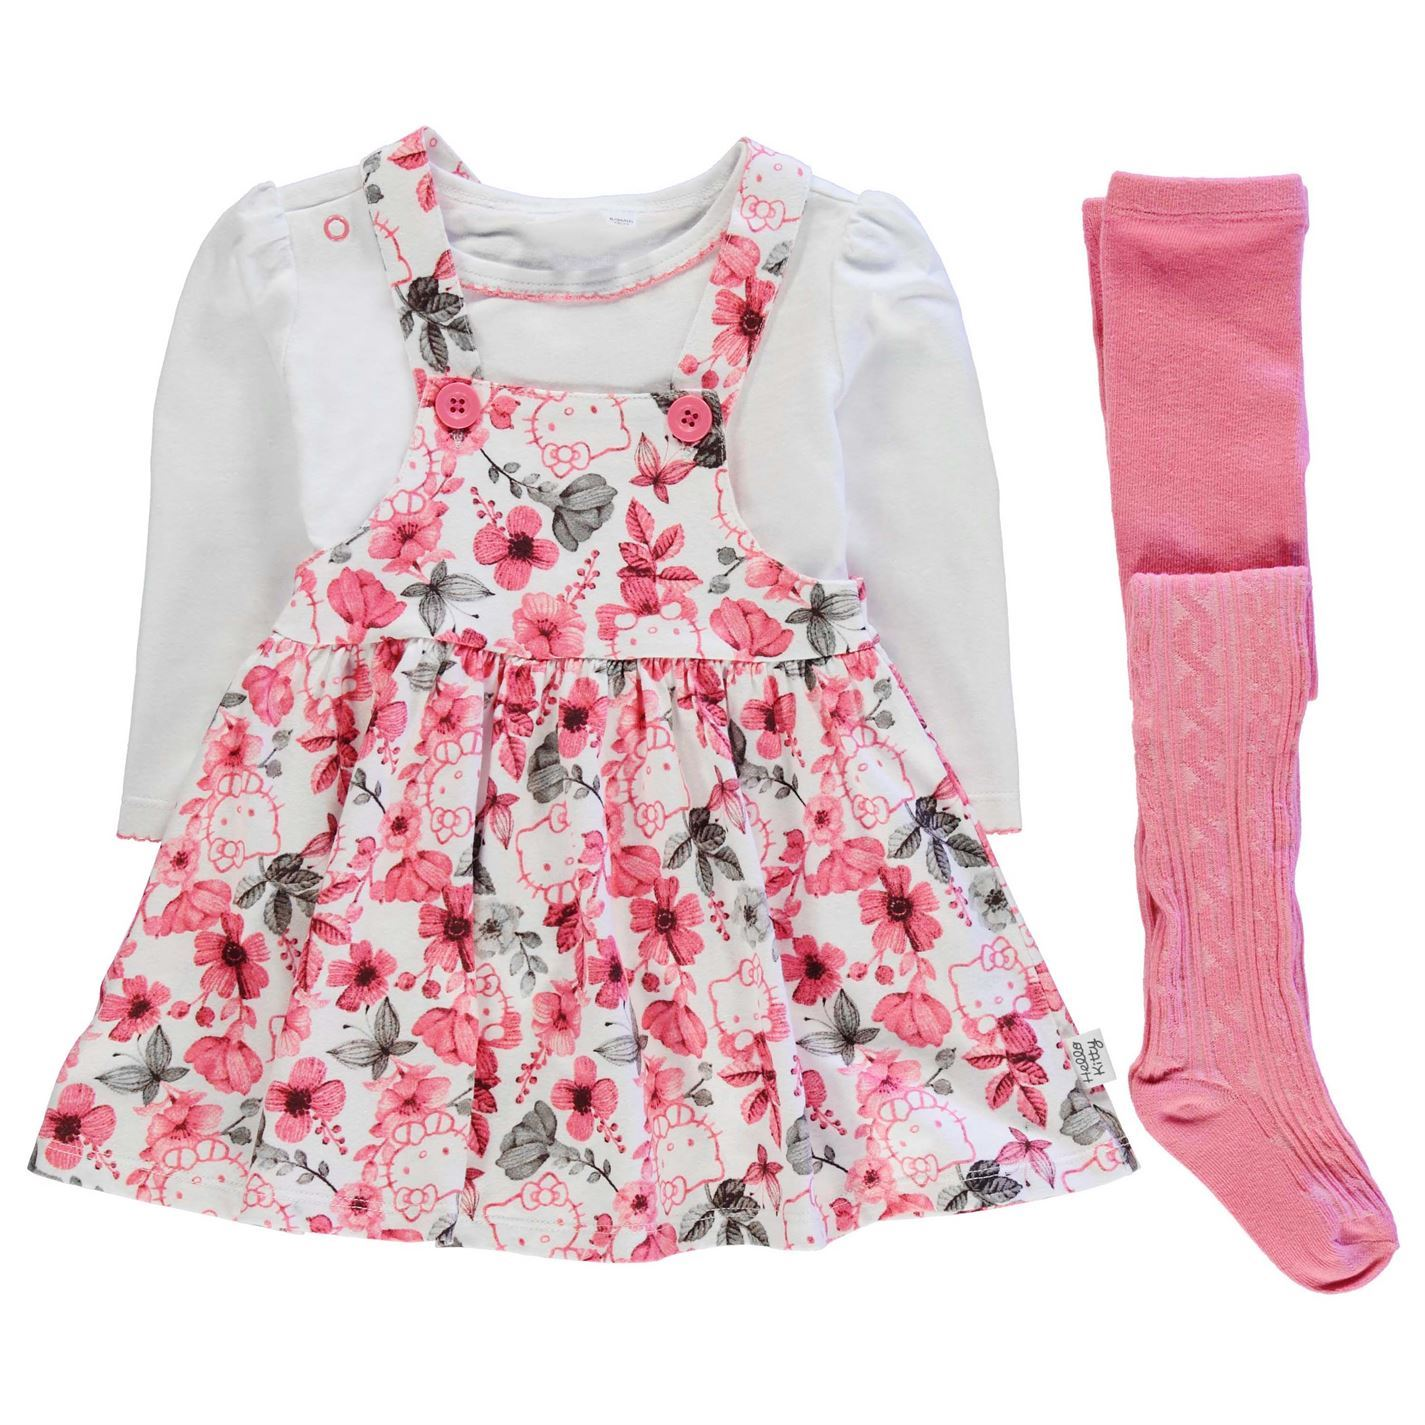 c01b09772 Hello Kitty 3 Piece Dress Set Baby Girls Pink White Clothes Set